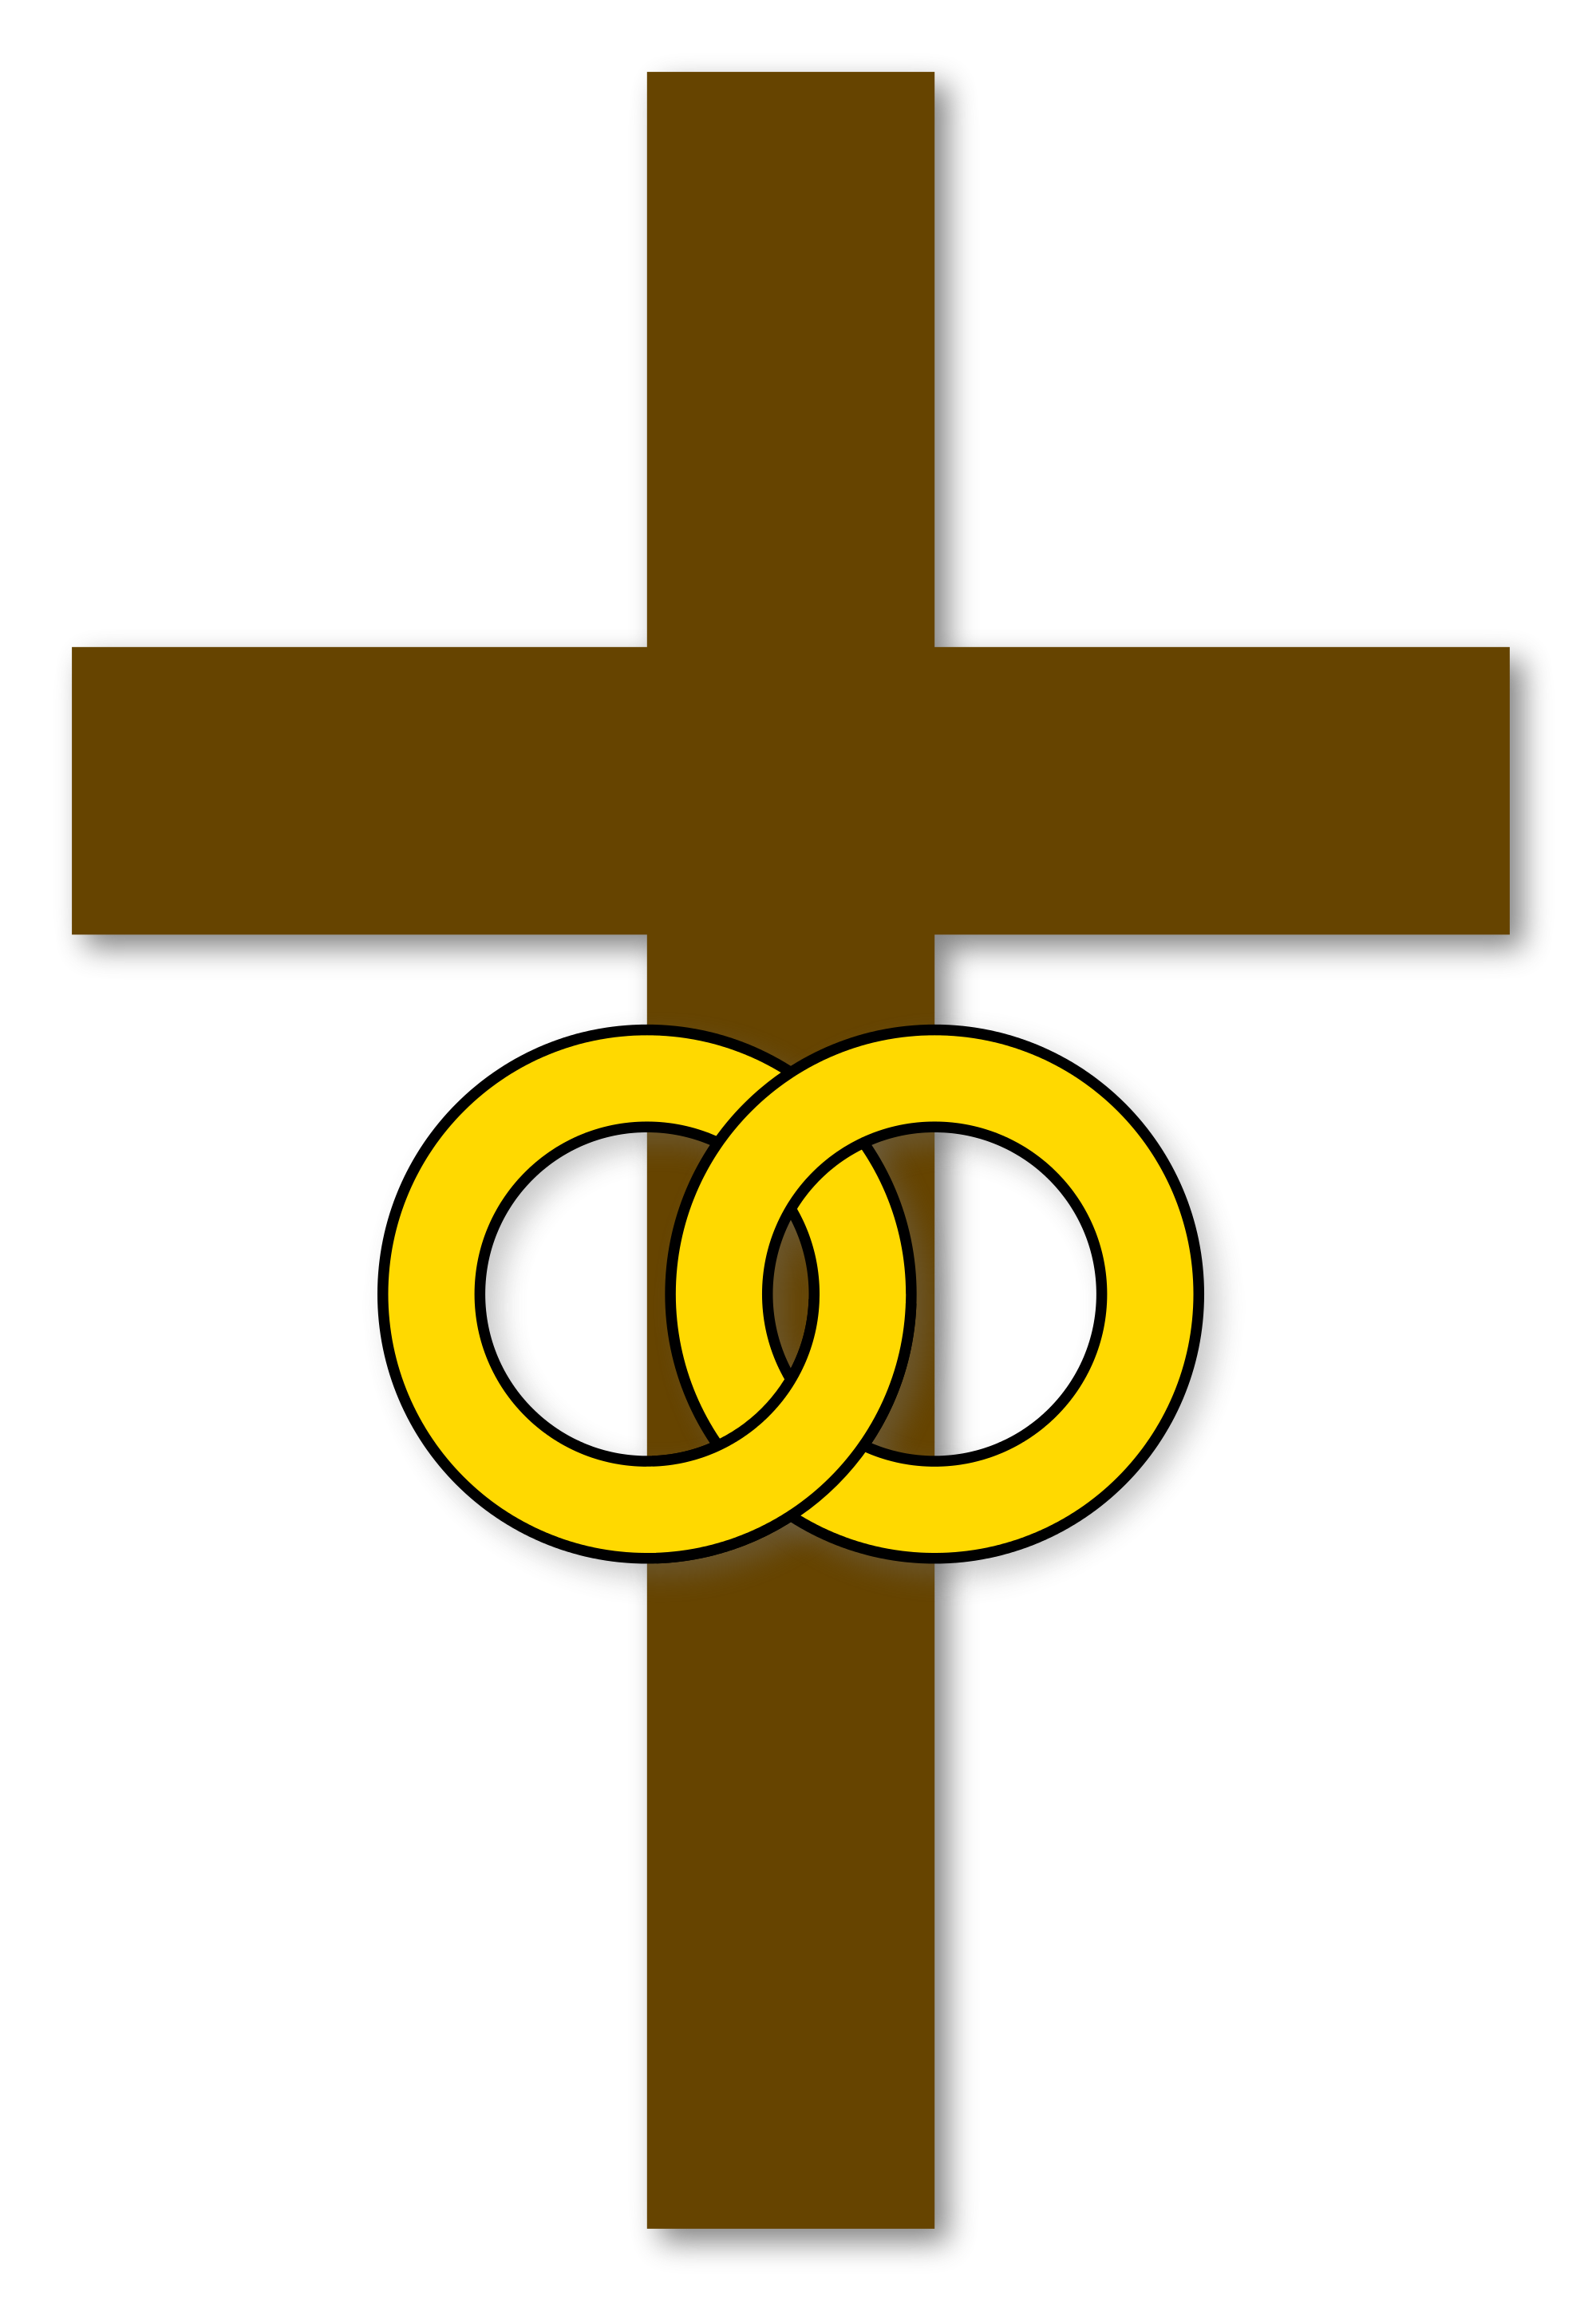 File marriage cross christian. Crucifix clipart christianity